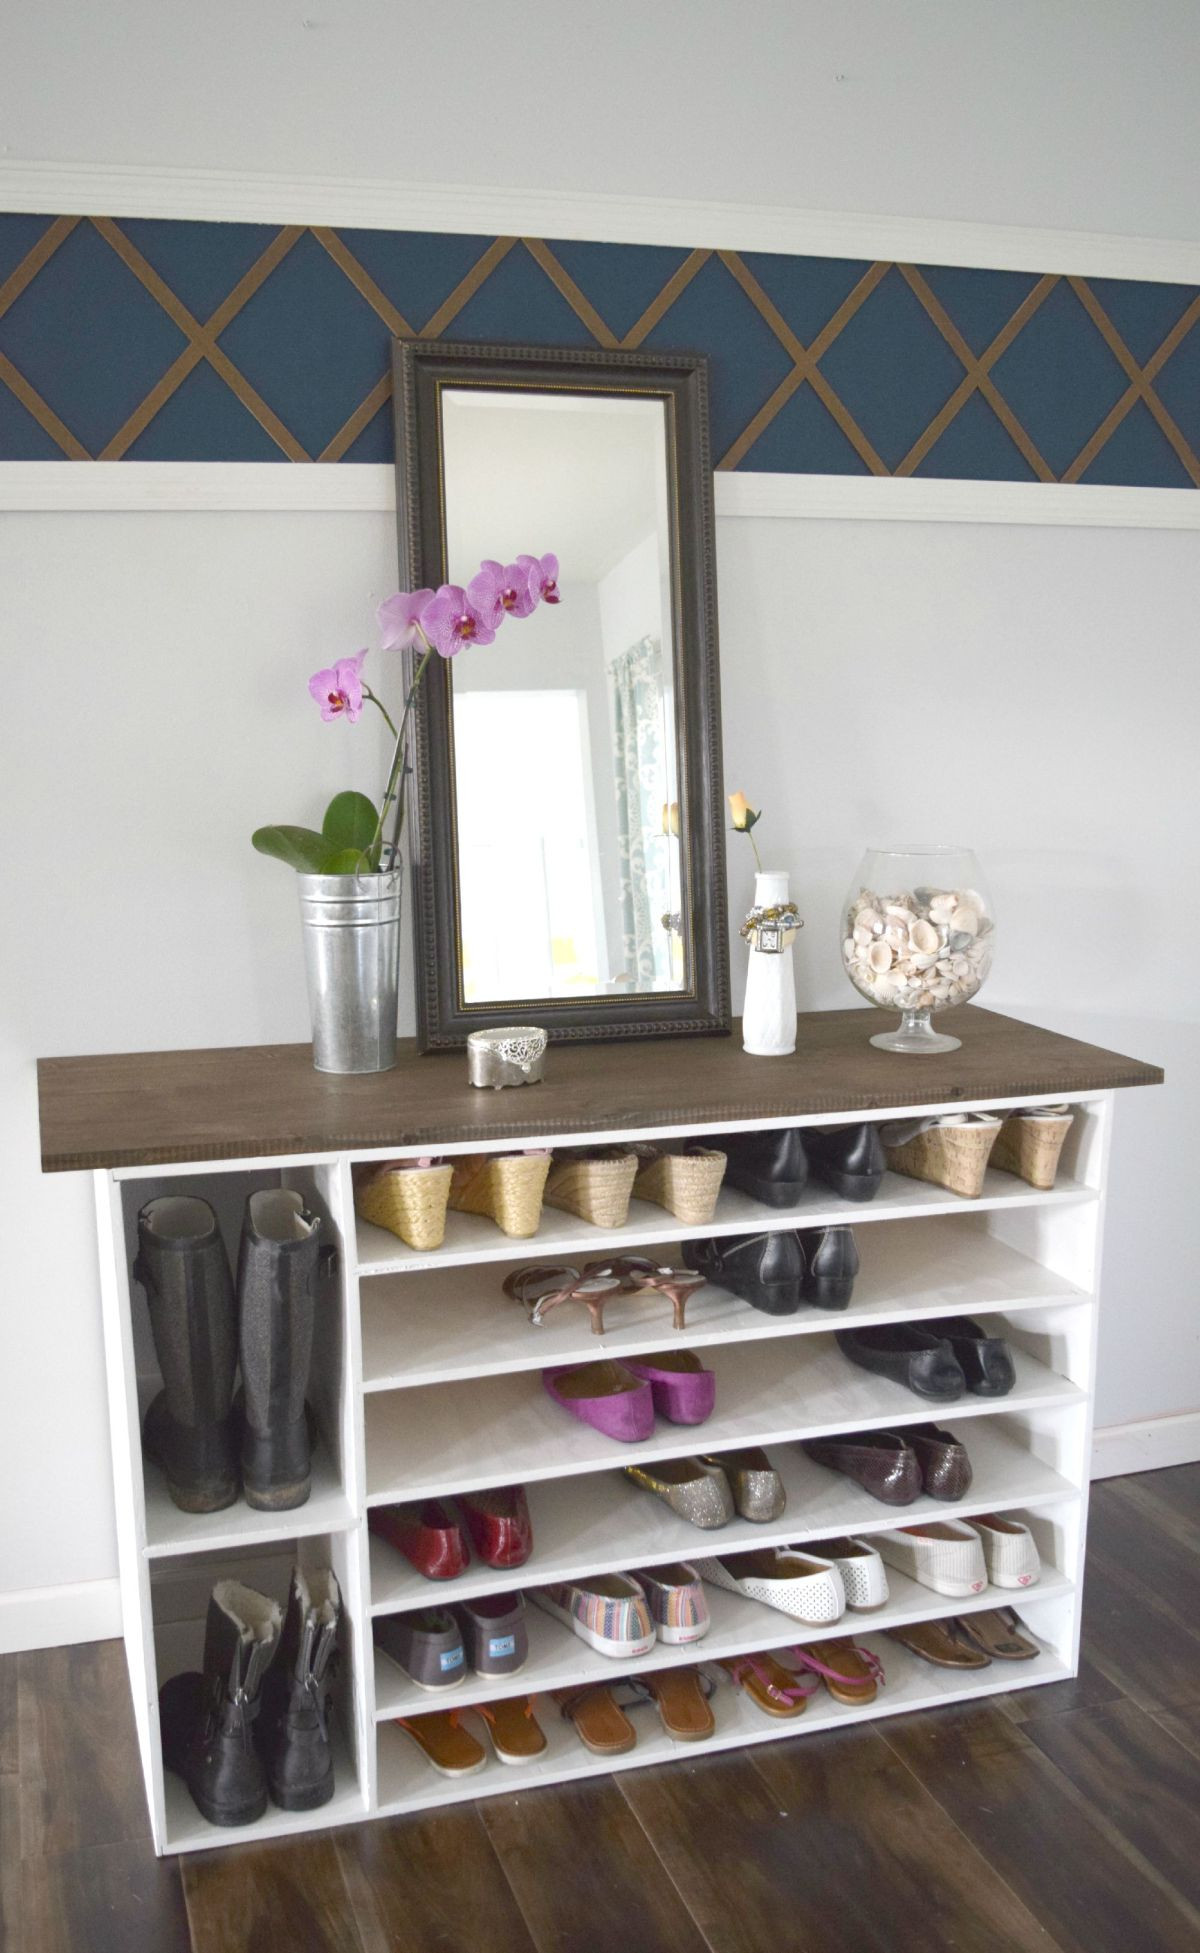 Best ideas about Shoe Storage DIY . Save or Pin Stylish DIY Shoe Rack Perfect for Any Room Now.